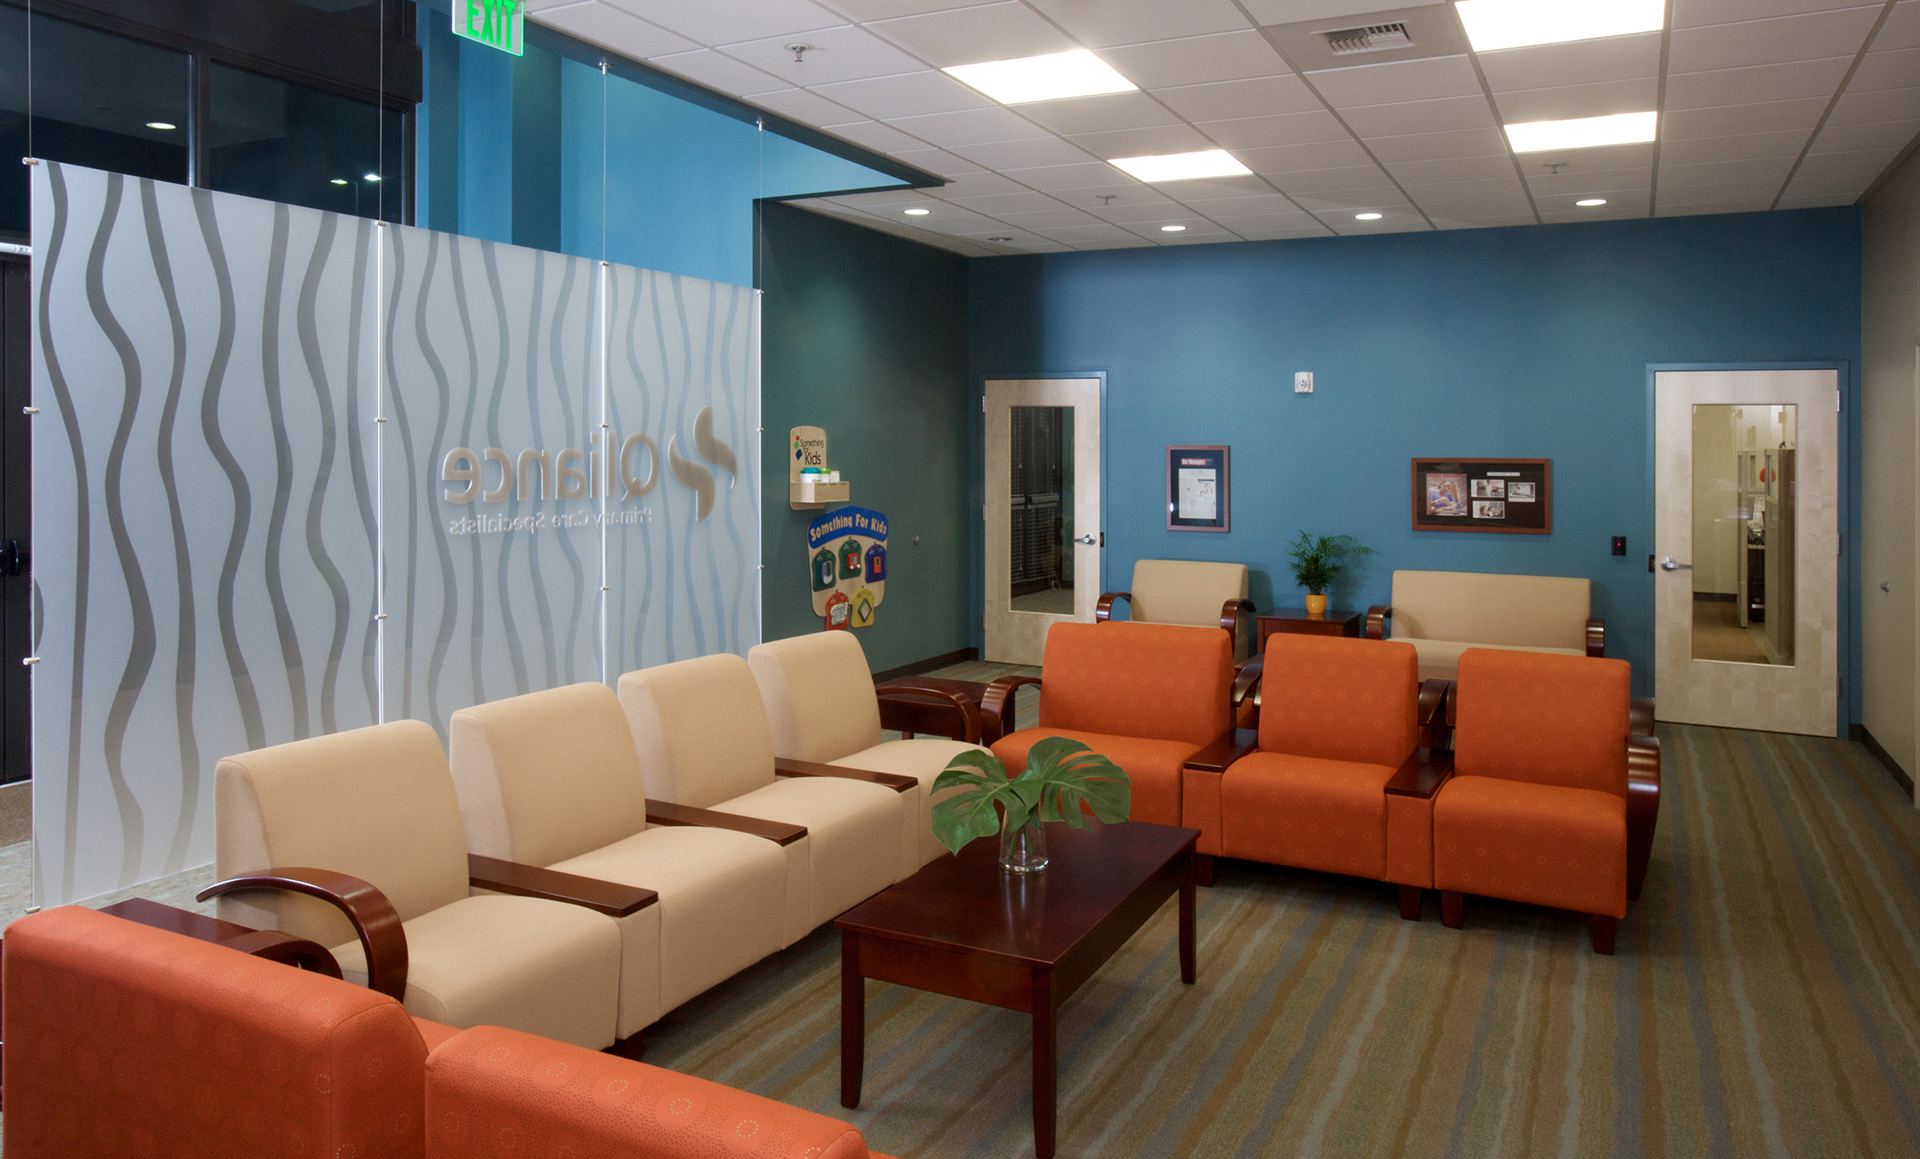 Katie hastings design llc qliance medical group kent for Medical office paint colors